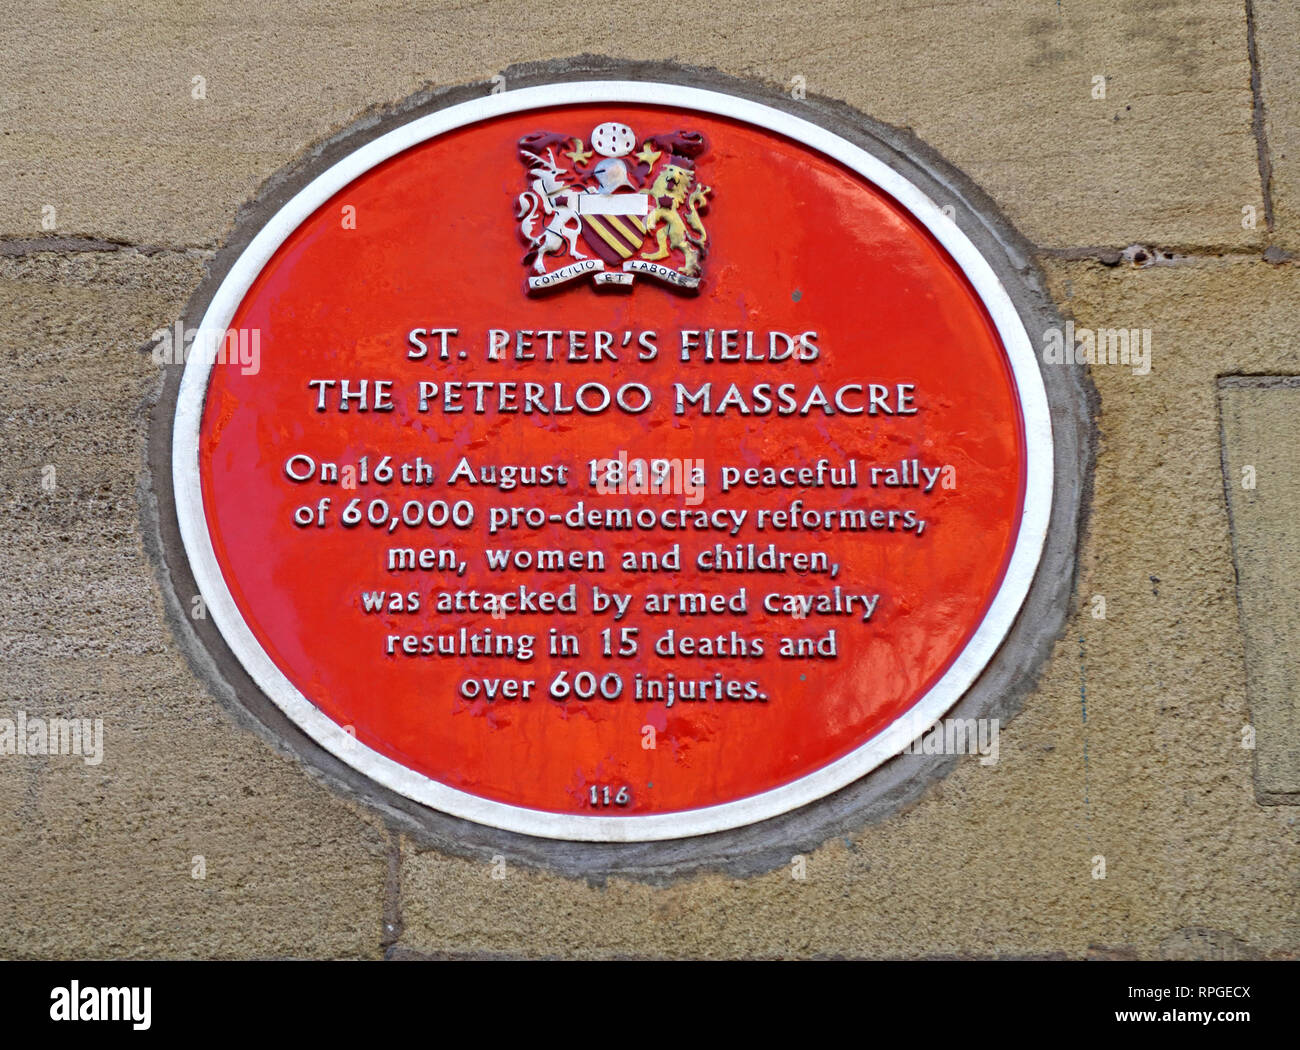 St Peters Fields, The Peterloo Massacre, Red Plaque, Peter Street, Manchester, North West England, UK - Stock Image